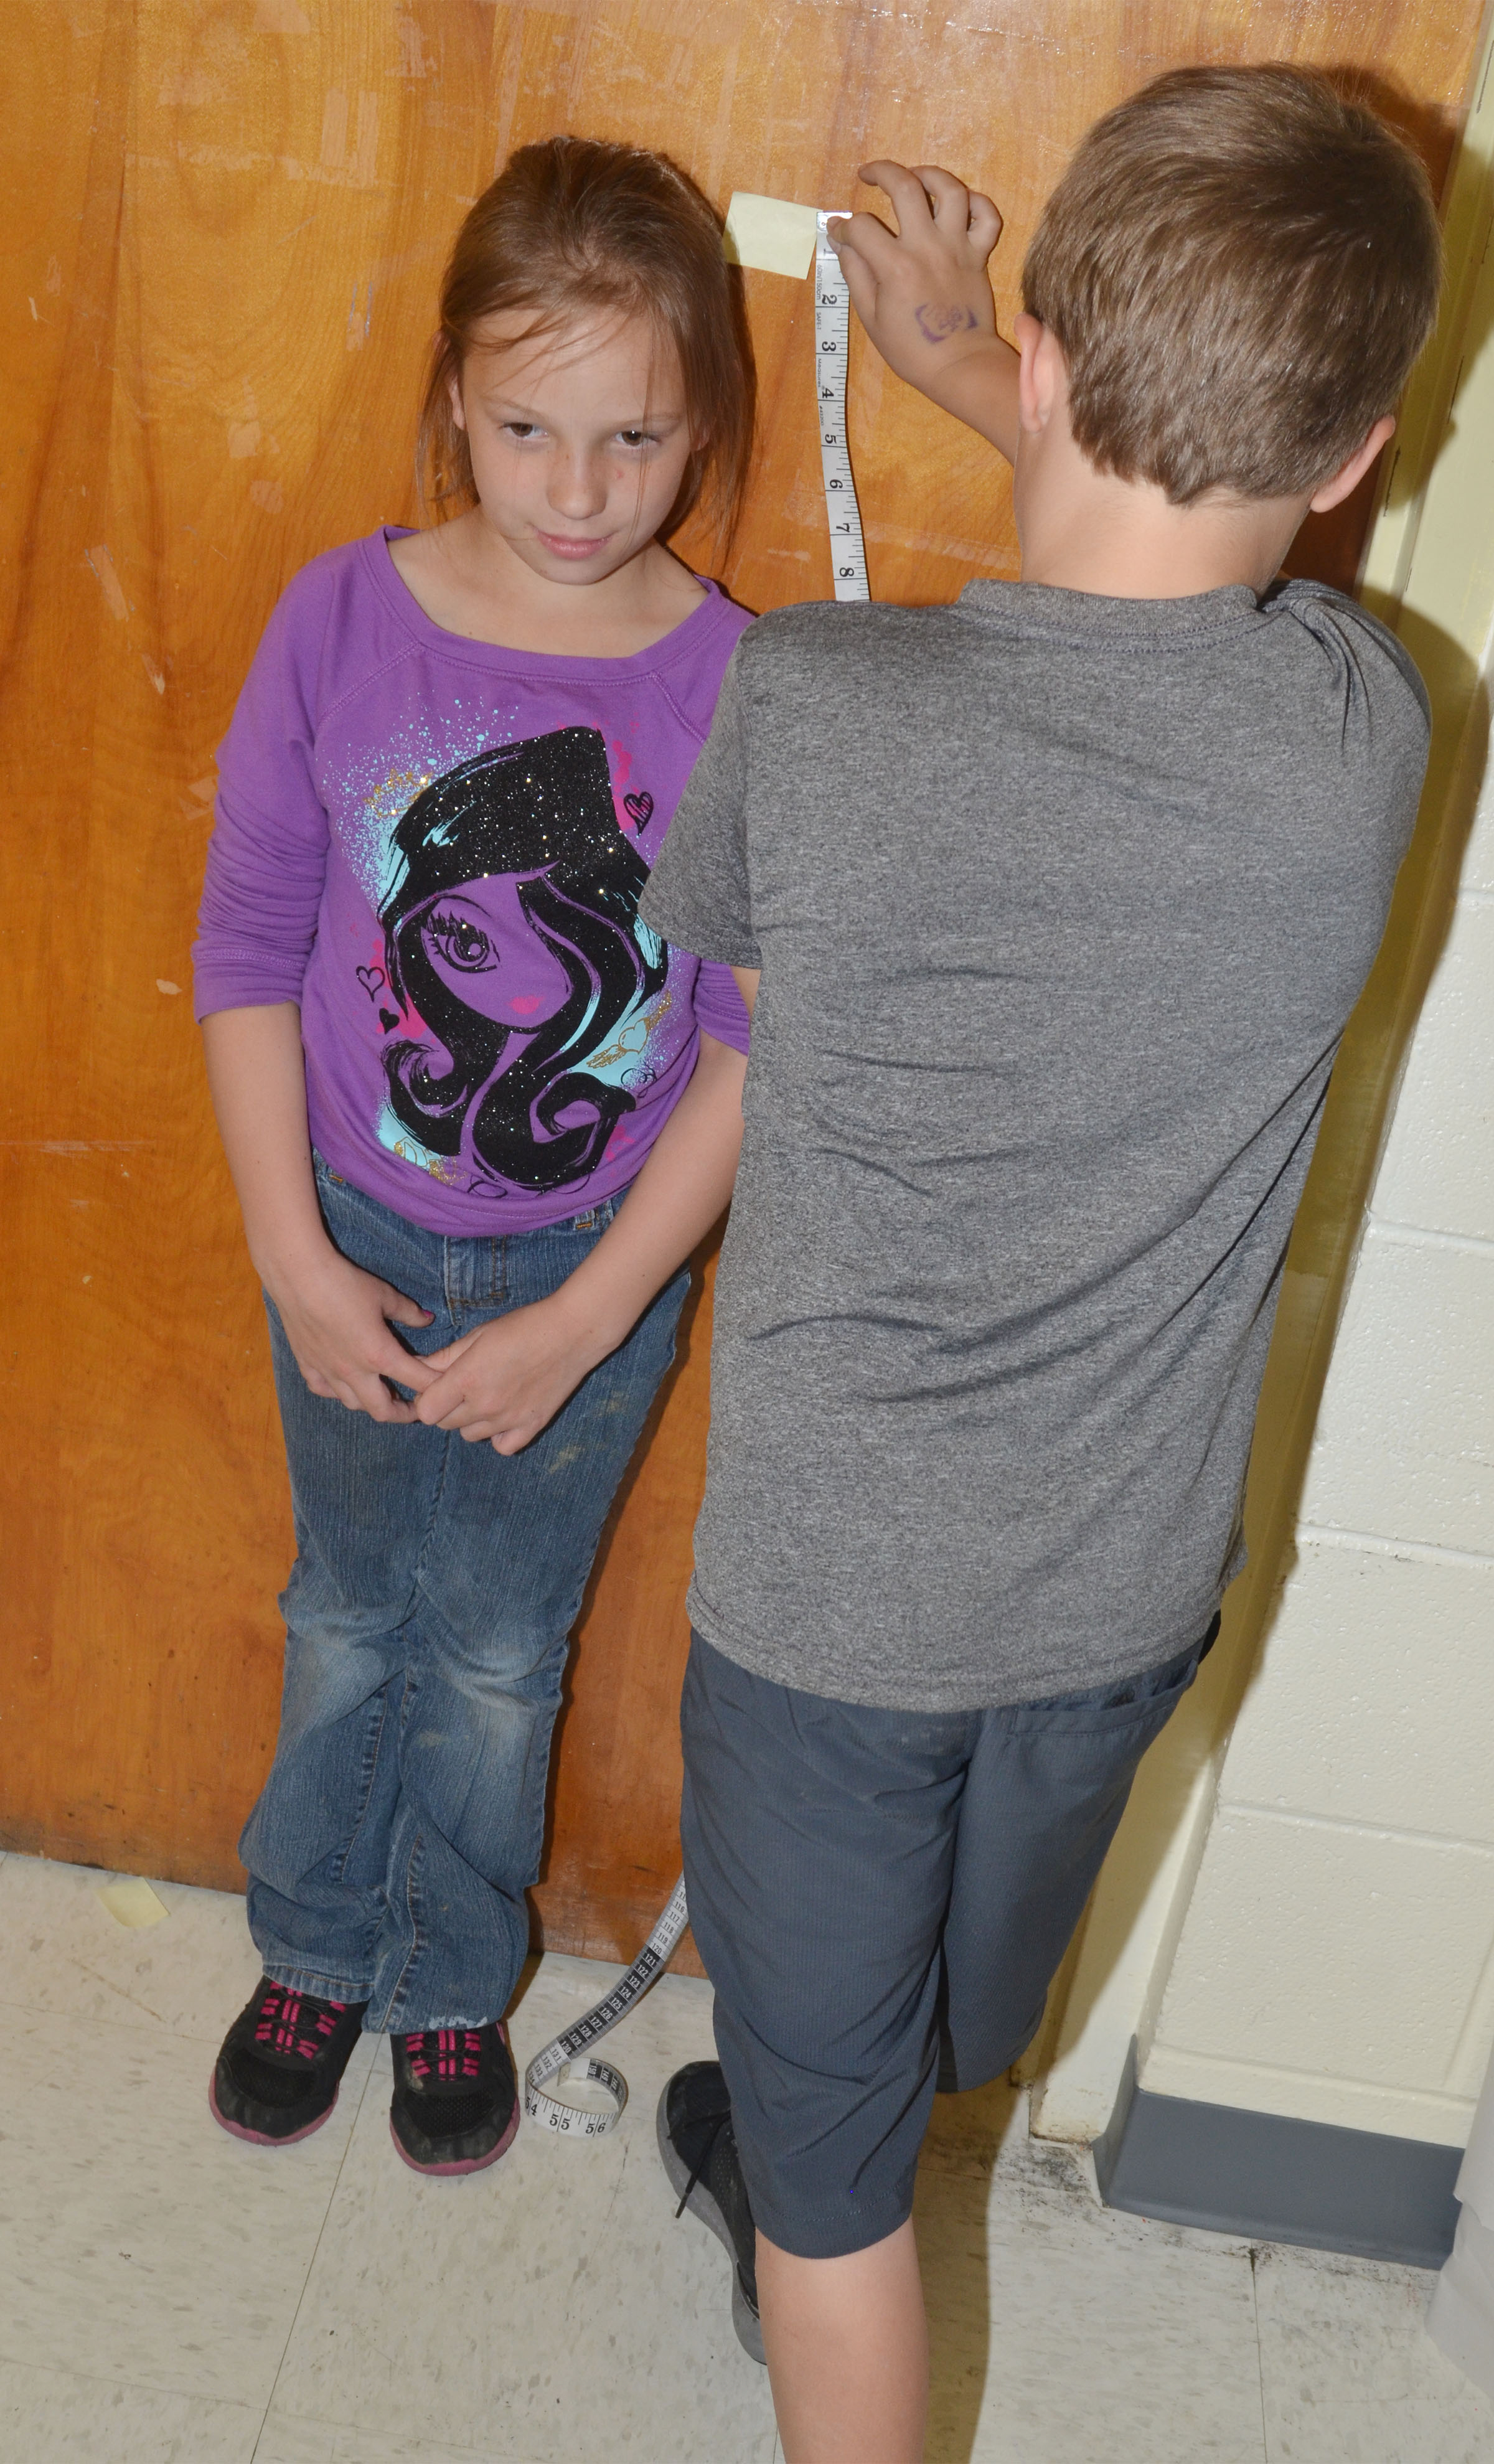 CES second-grader Emerson Gowin measures classmate Alyah Meadows.